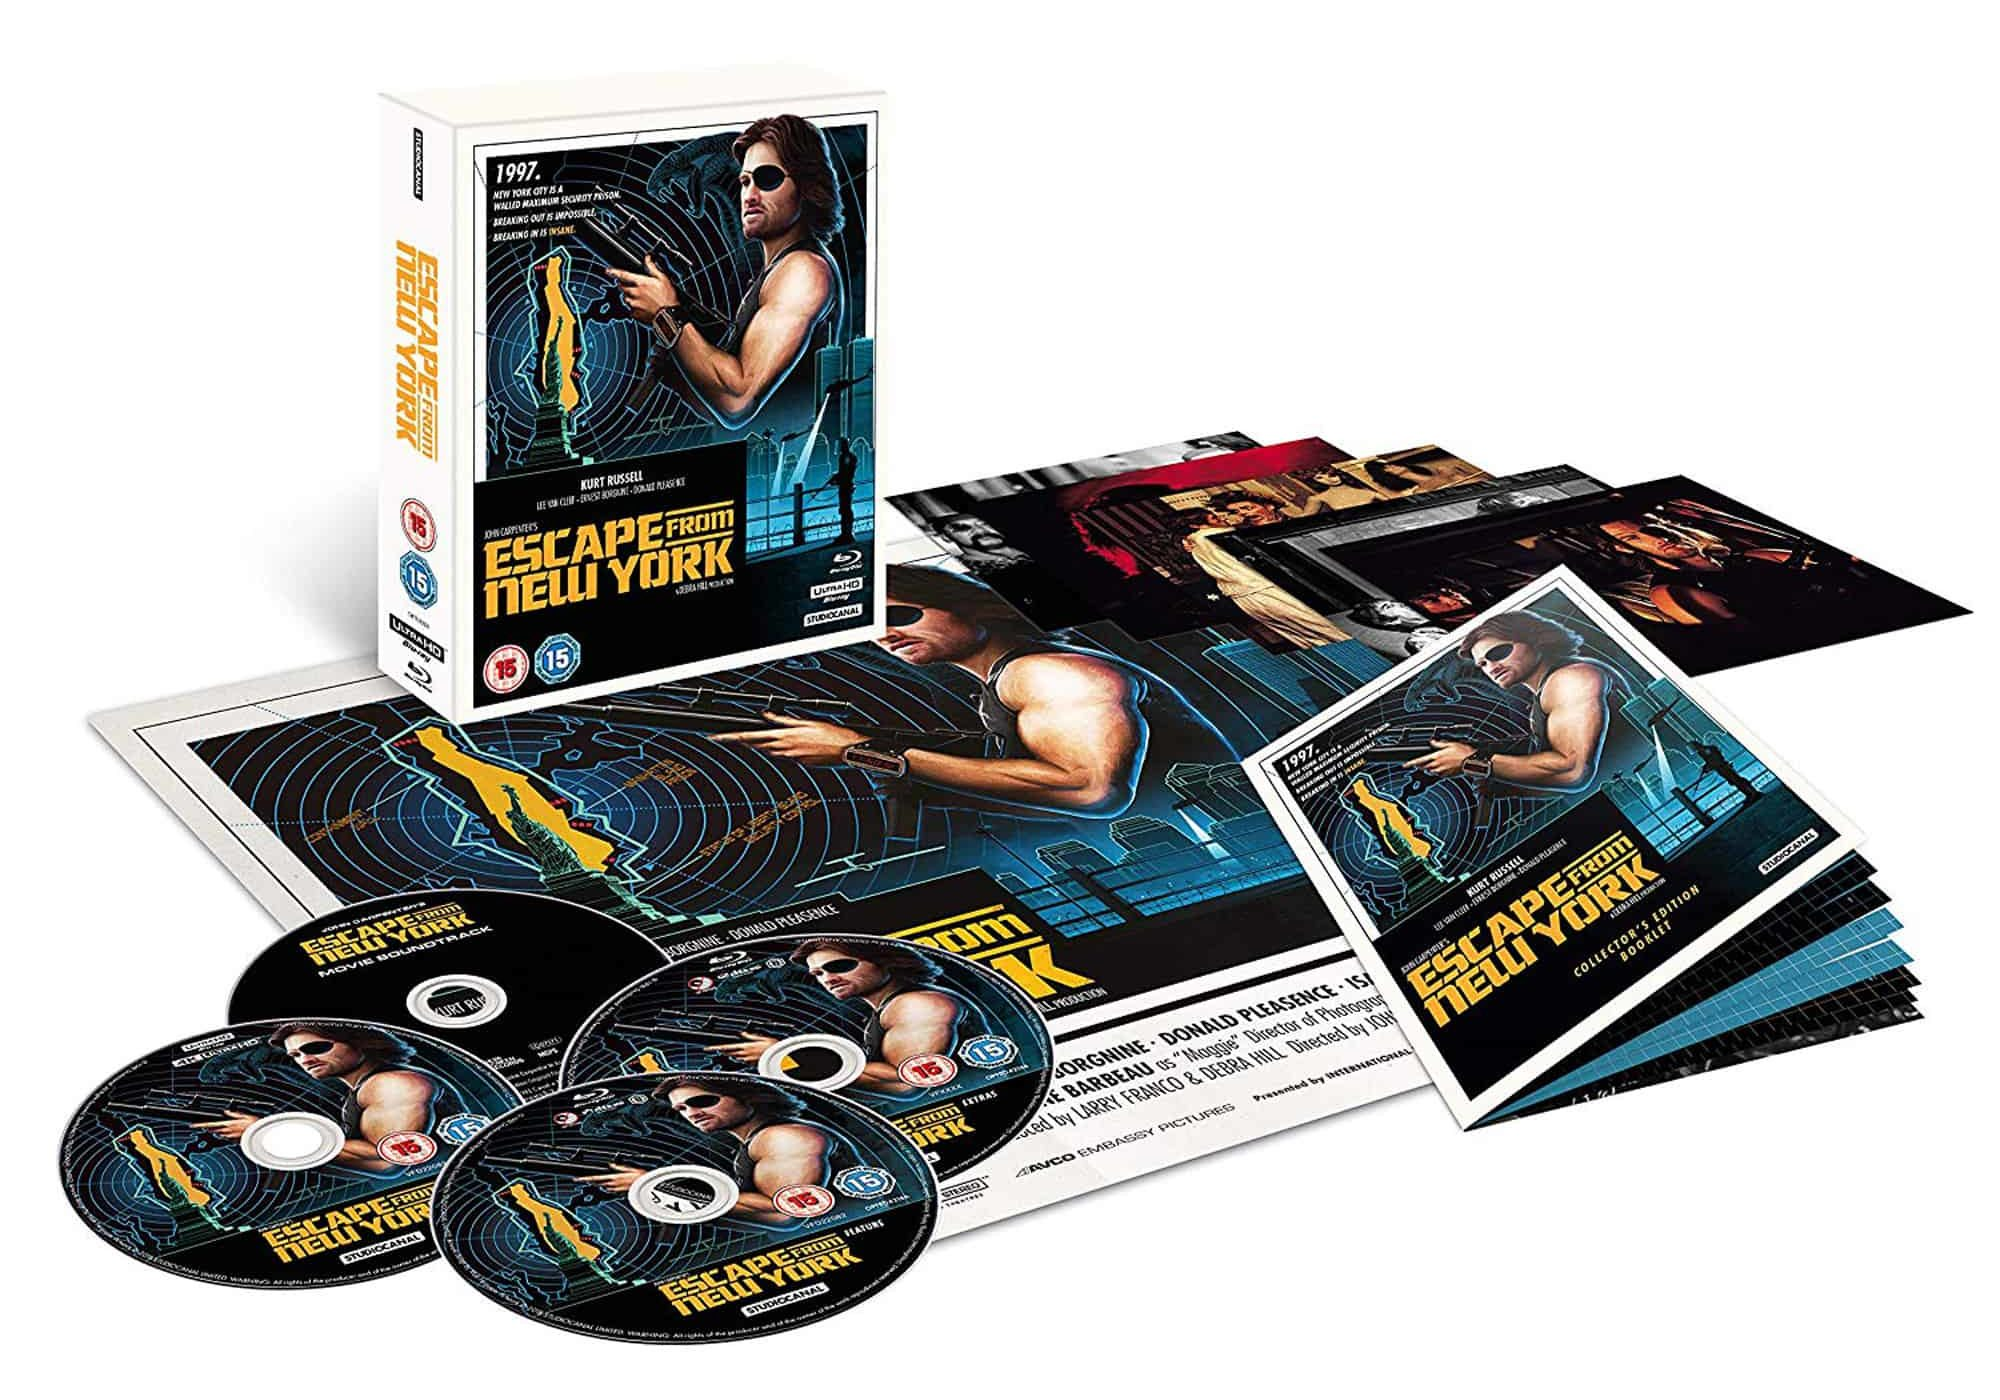 Collector's Edition 4K Ultra HD boxset artwork for <em>Escape From New York</em>